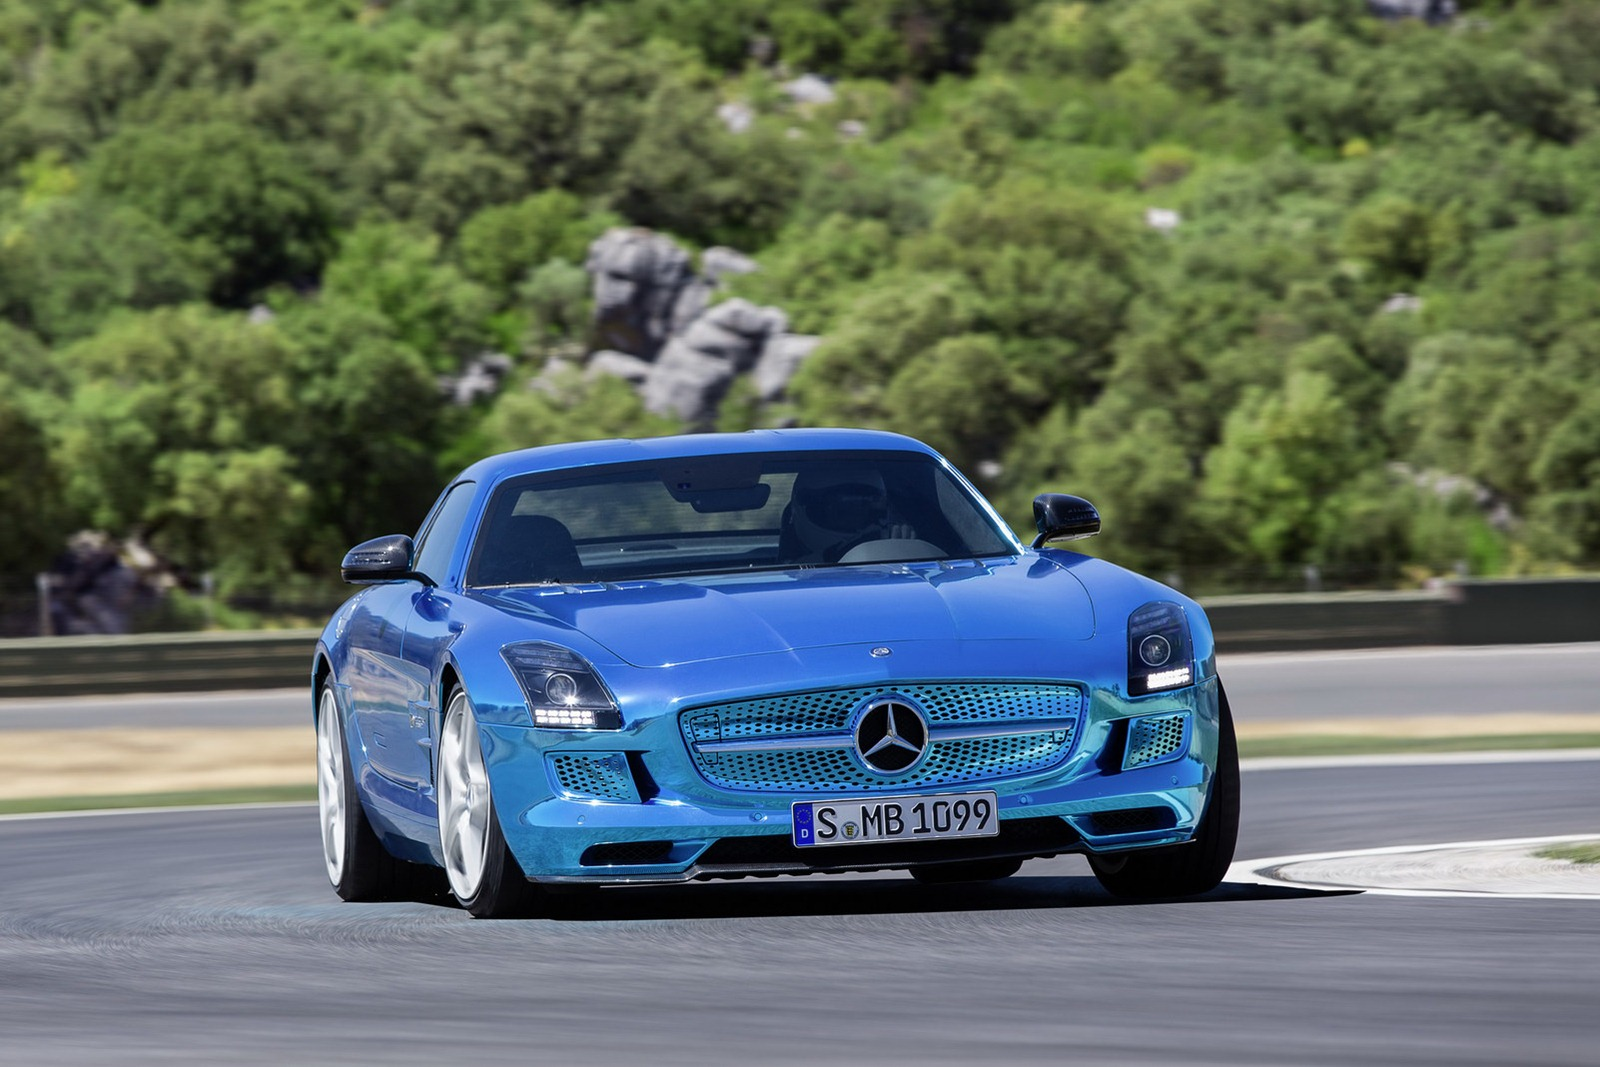 Mercedes sls amg electric drive autooonline magazine for Mercedes benz sls amg electric drive price